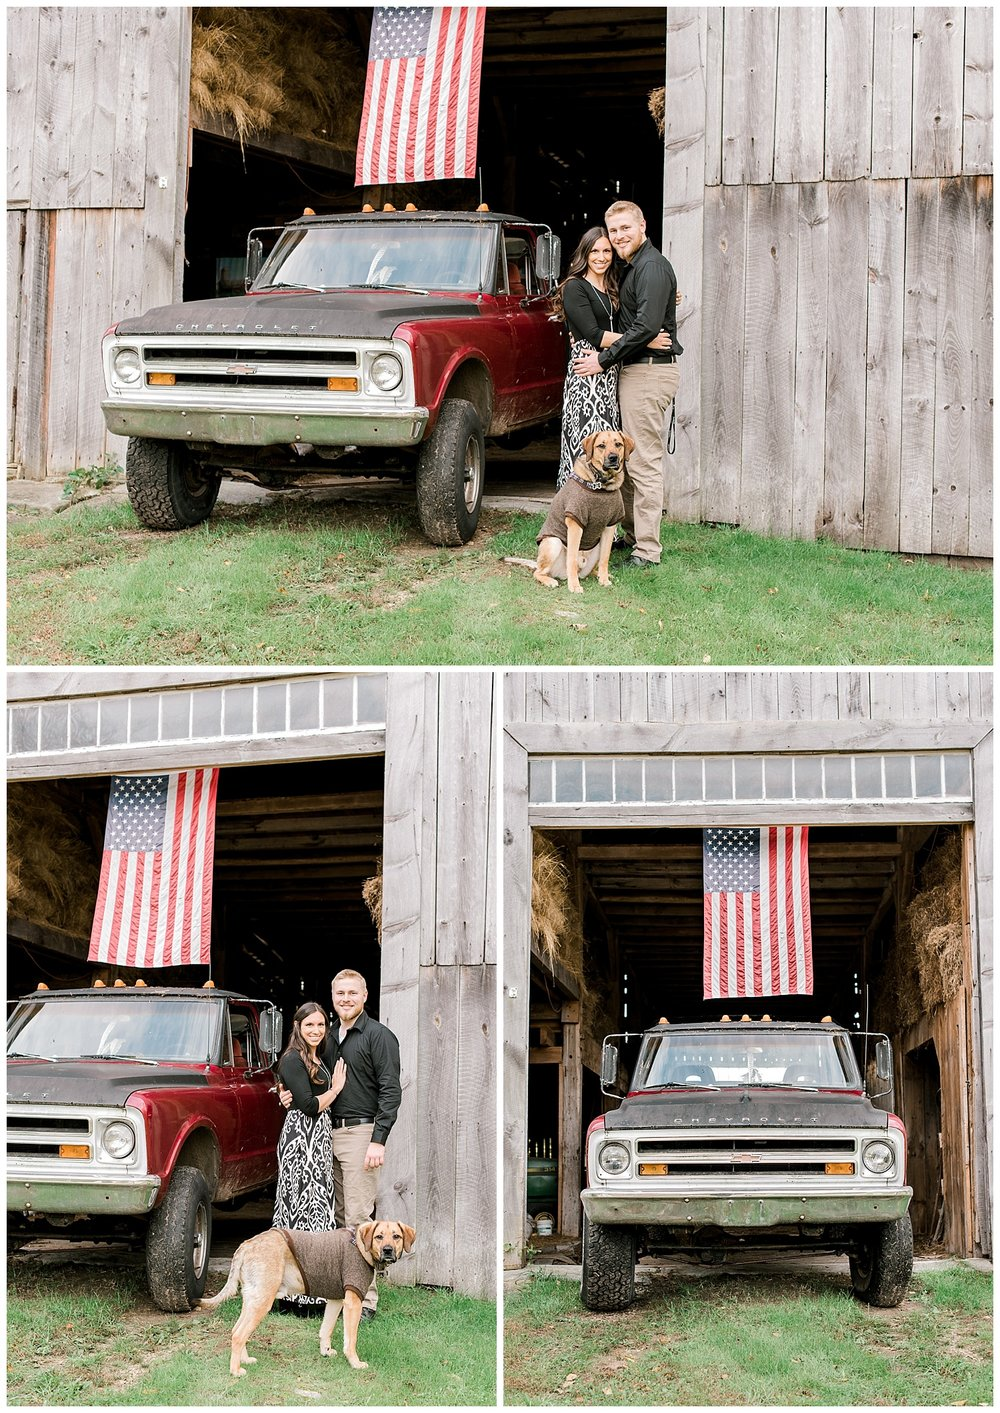 october18-connecticut-engagement-photography-rustic-farm-1.jpg